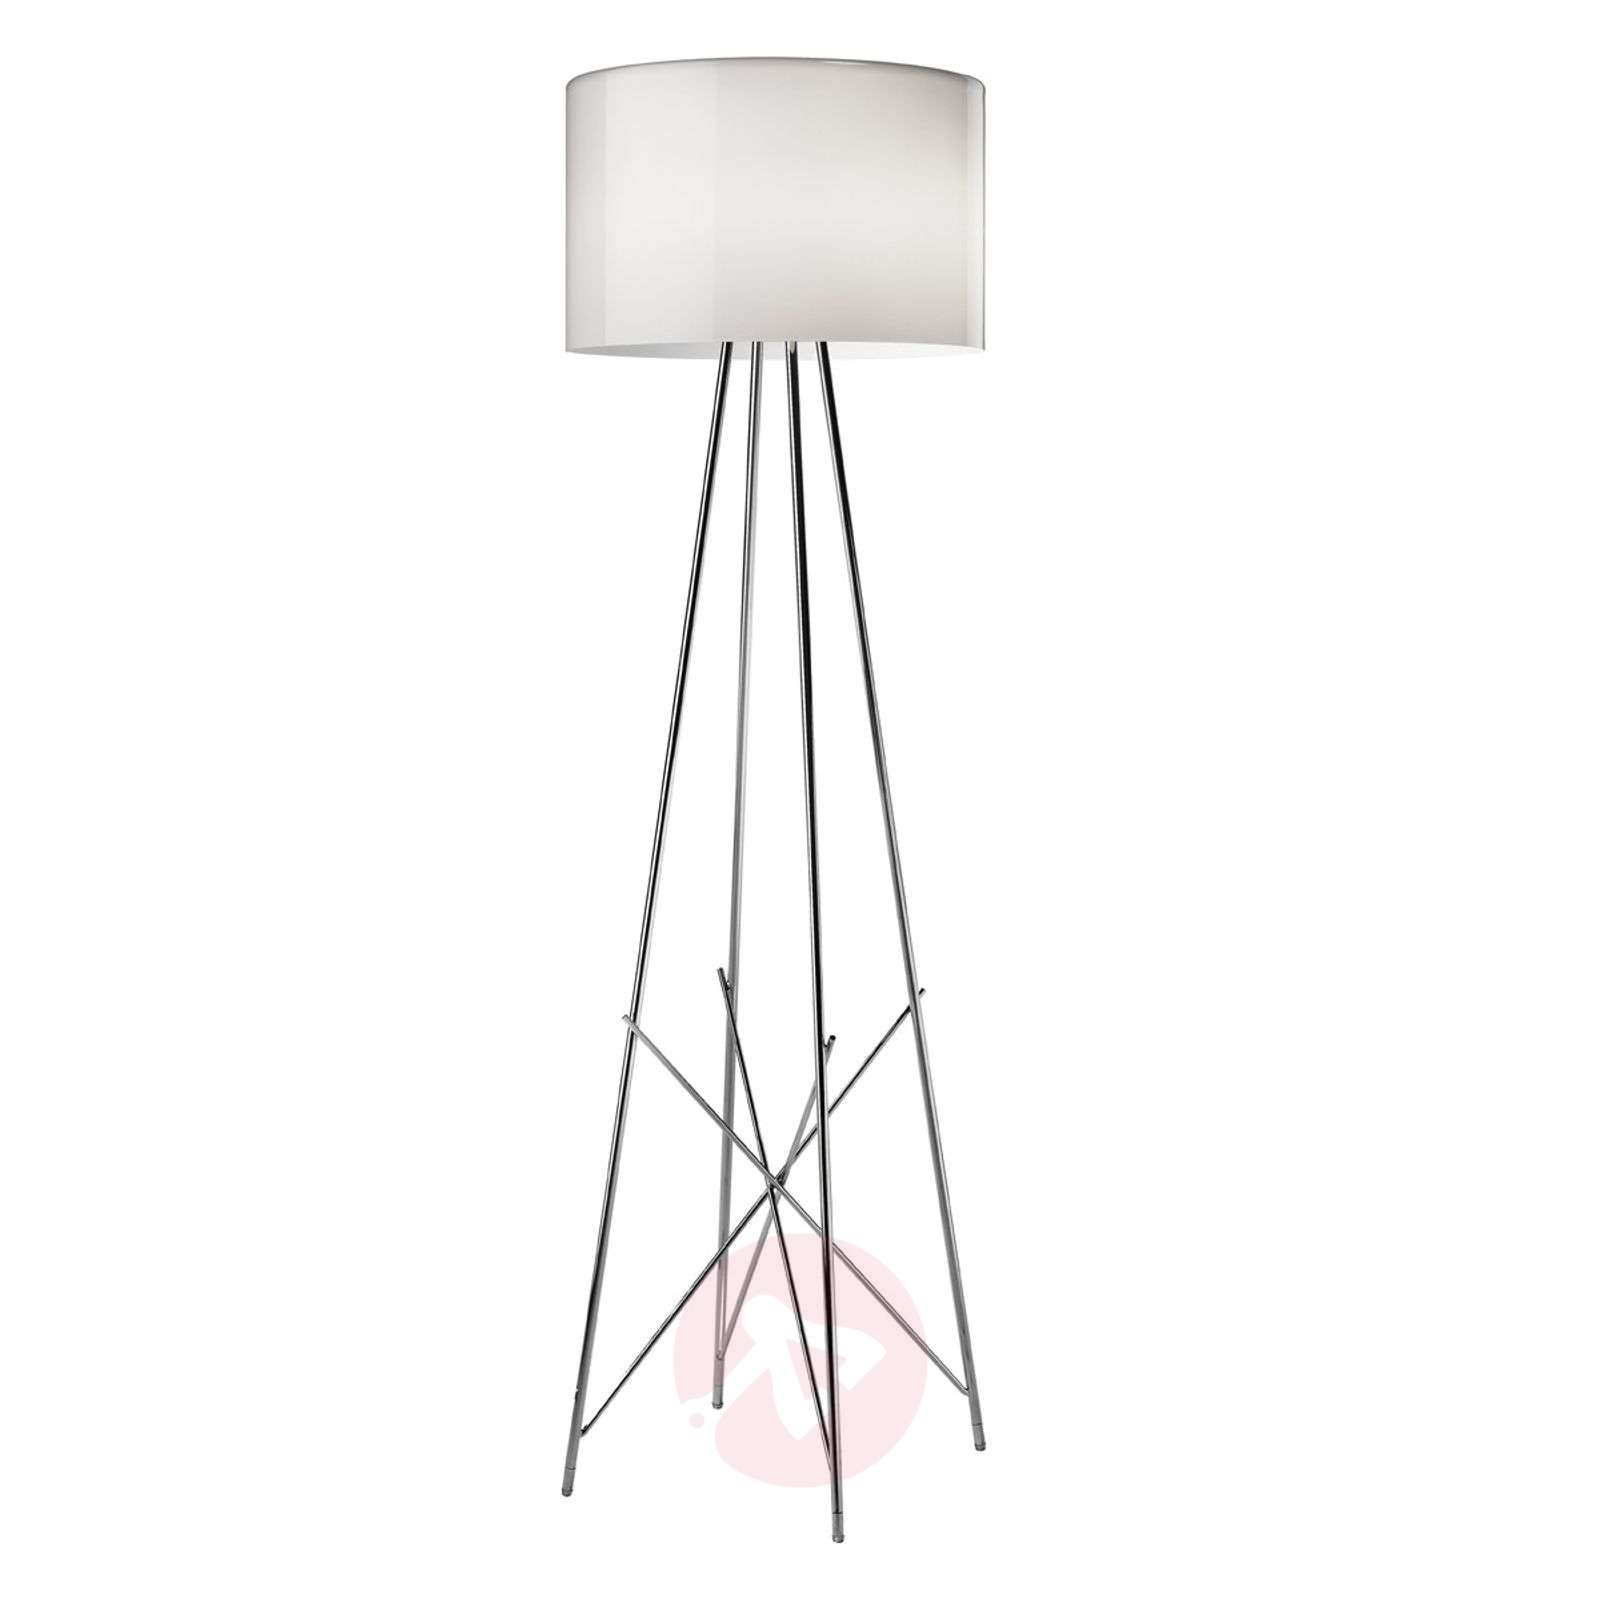 RAY F1 Floor lamp by FLOS with Metal Frame-3510128X-07